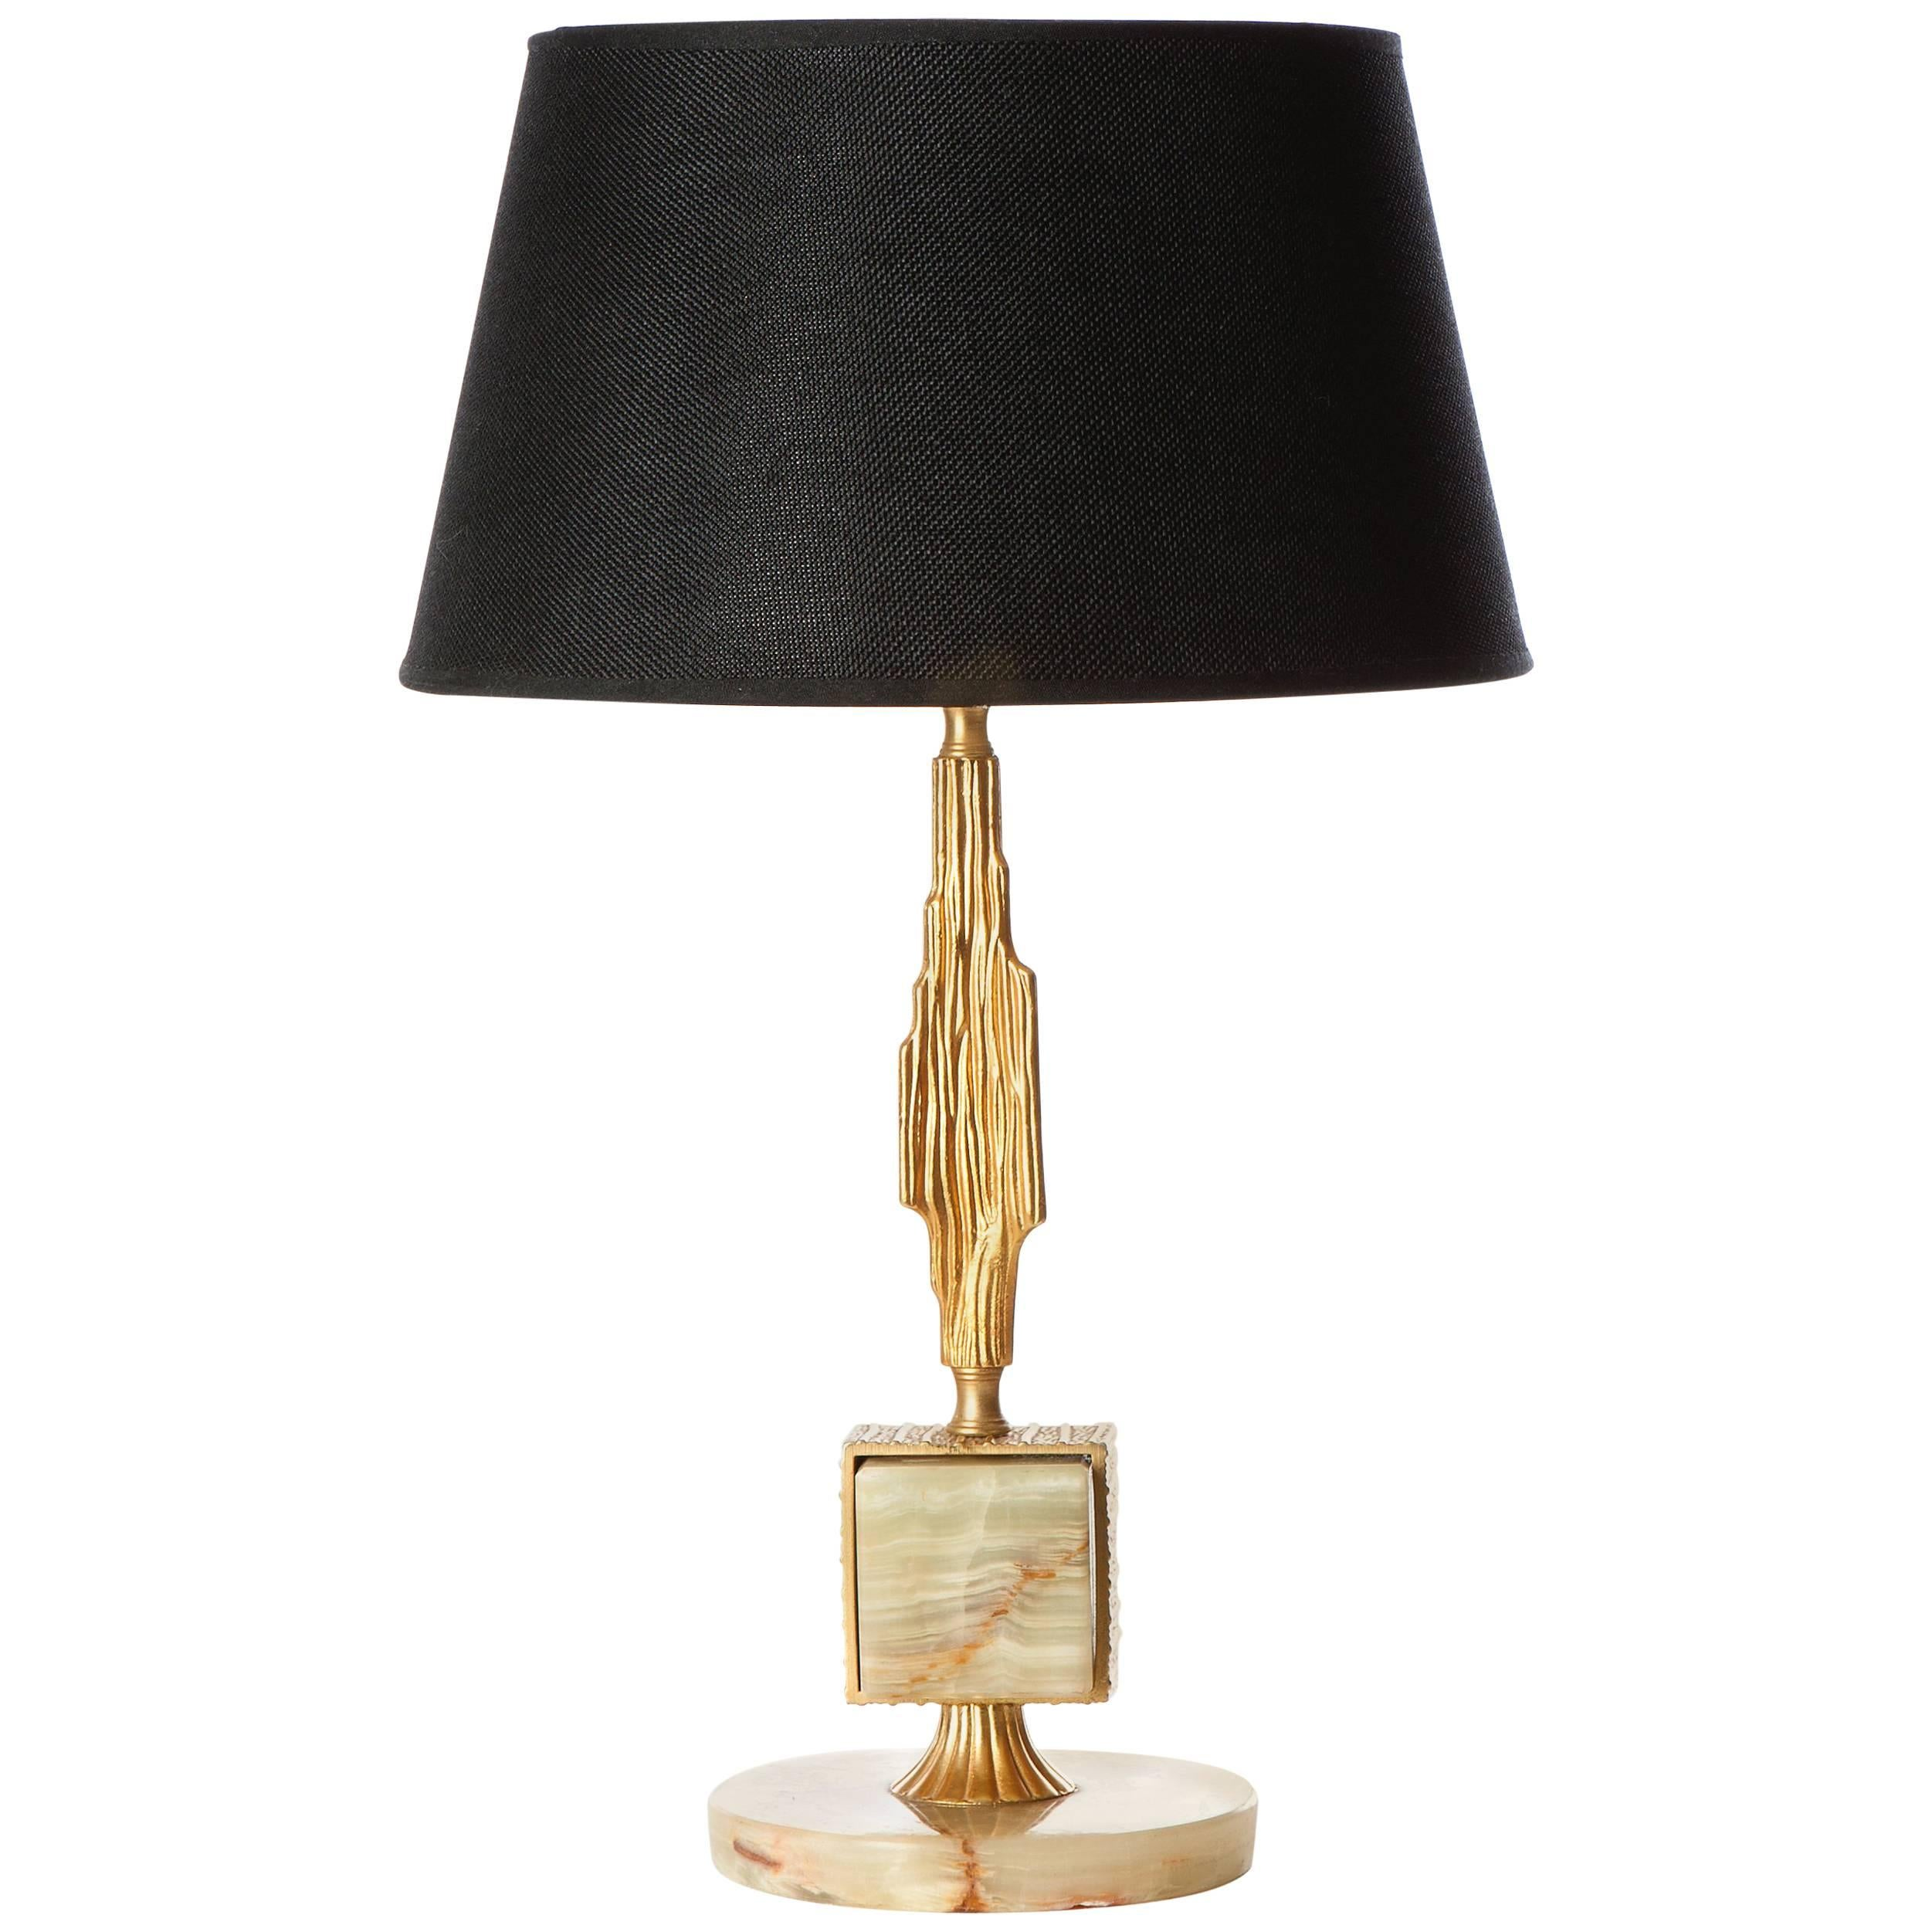 Elegant Brass and Onyx Table Lamp in Style of Sciolari